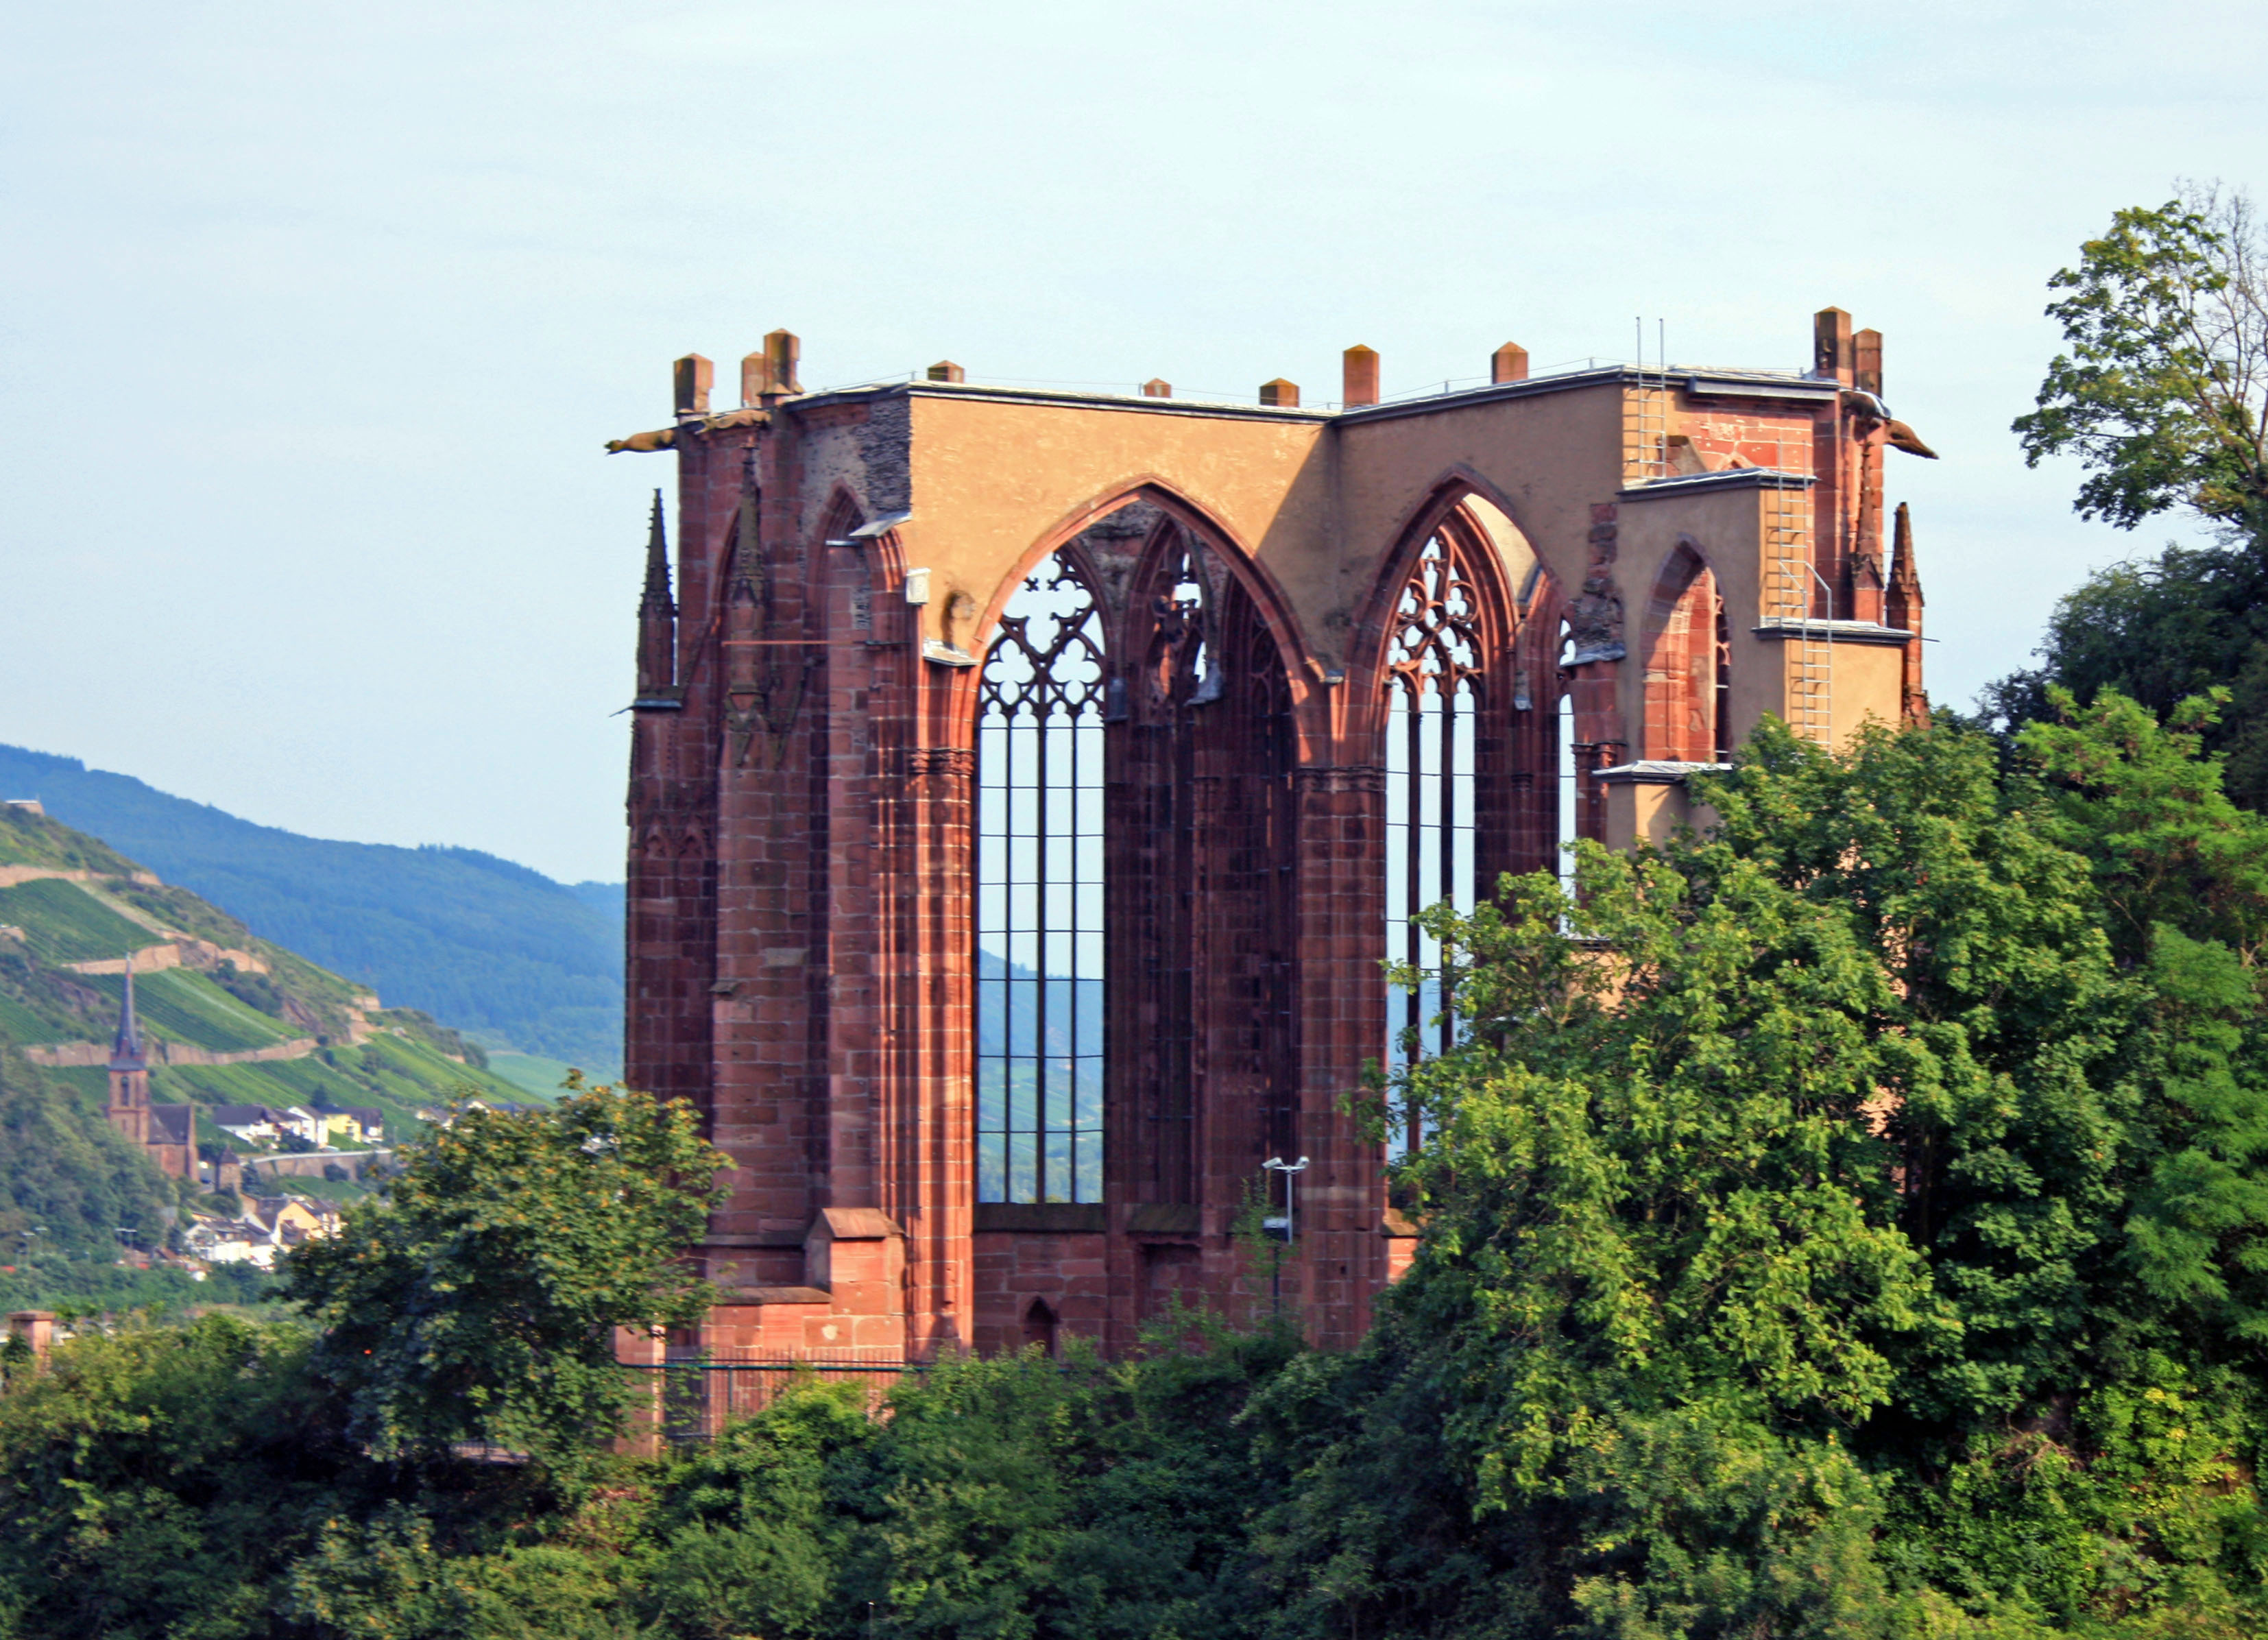 The ruins of Saint Werner's Chapel in Bacharach.